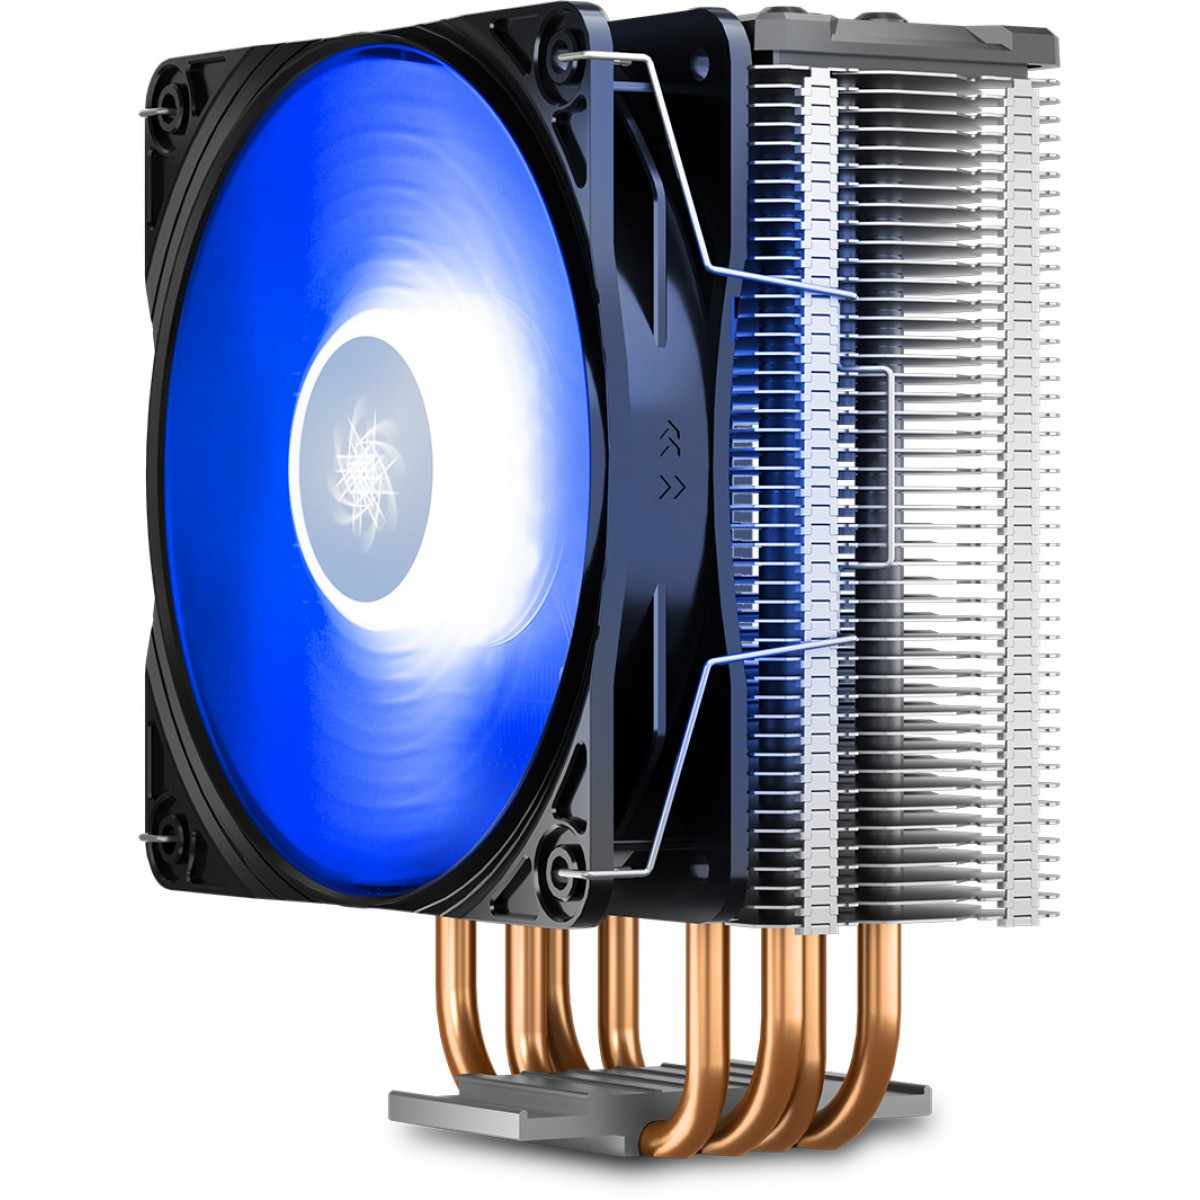 Cooler para Processador DeepCool Gammaxx GT V2 LED RGB, 120mm, Intel-AMD, DP-MCH4-GMX-GTV2